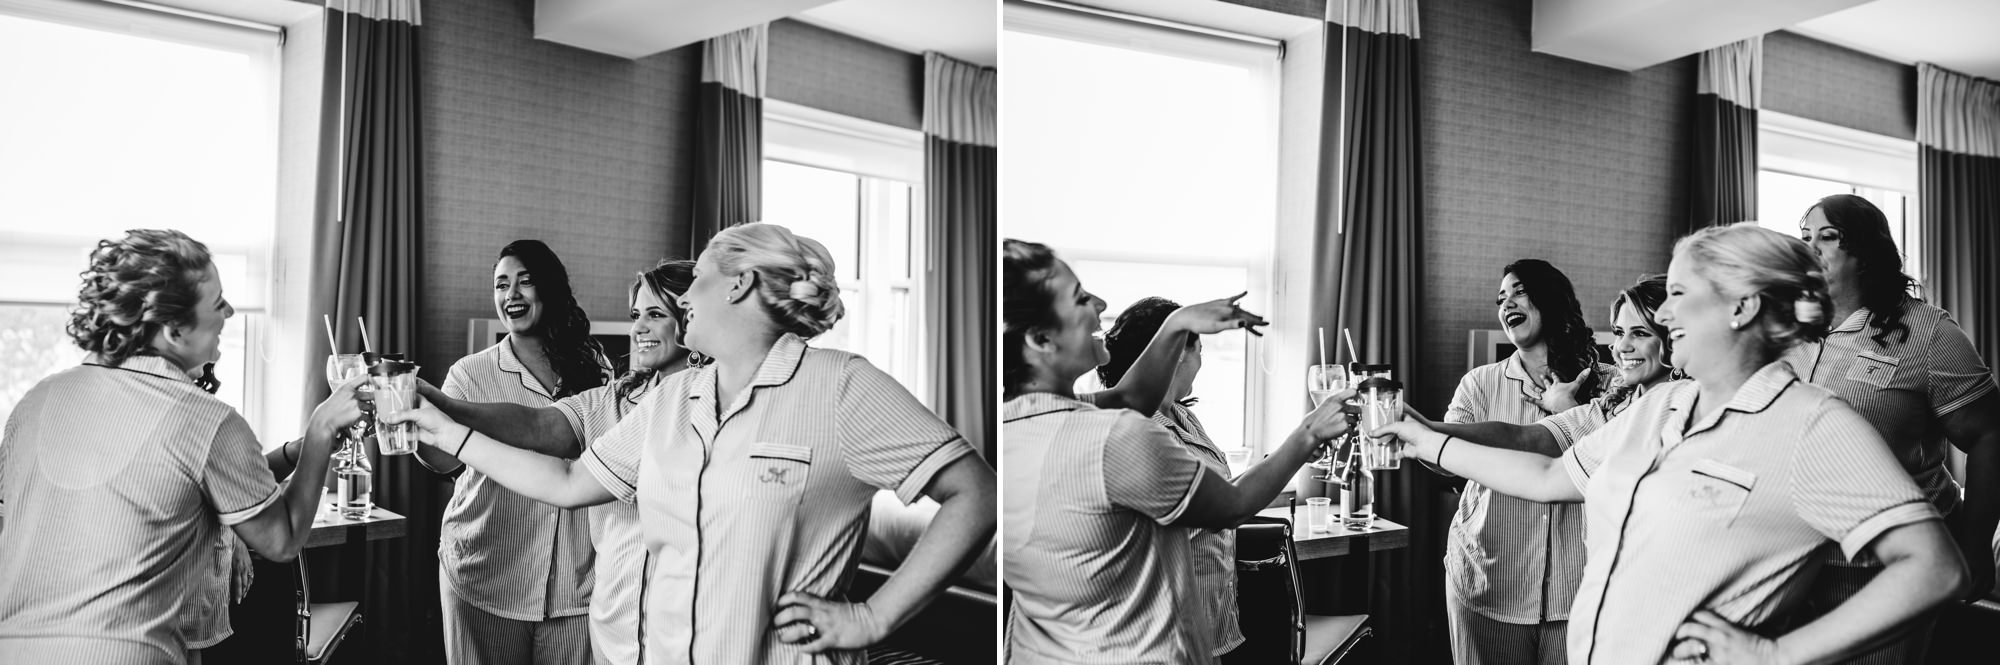 Wedding Toast | Shooting for Kit and Bug Photography | Asbury Park Photographer | Spring Lake Photographer | Wedding Photographer | Jersey Shore Photographer